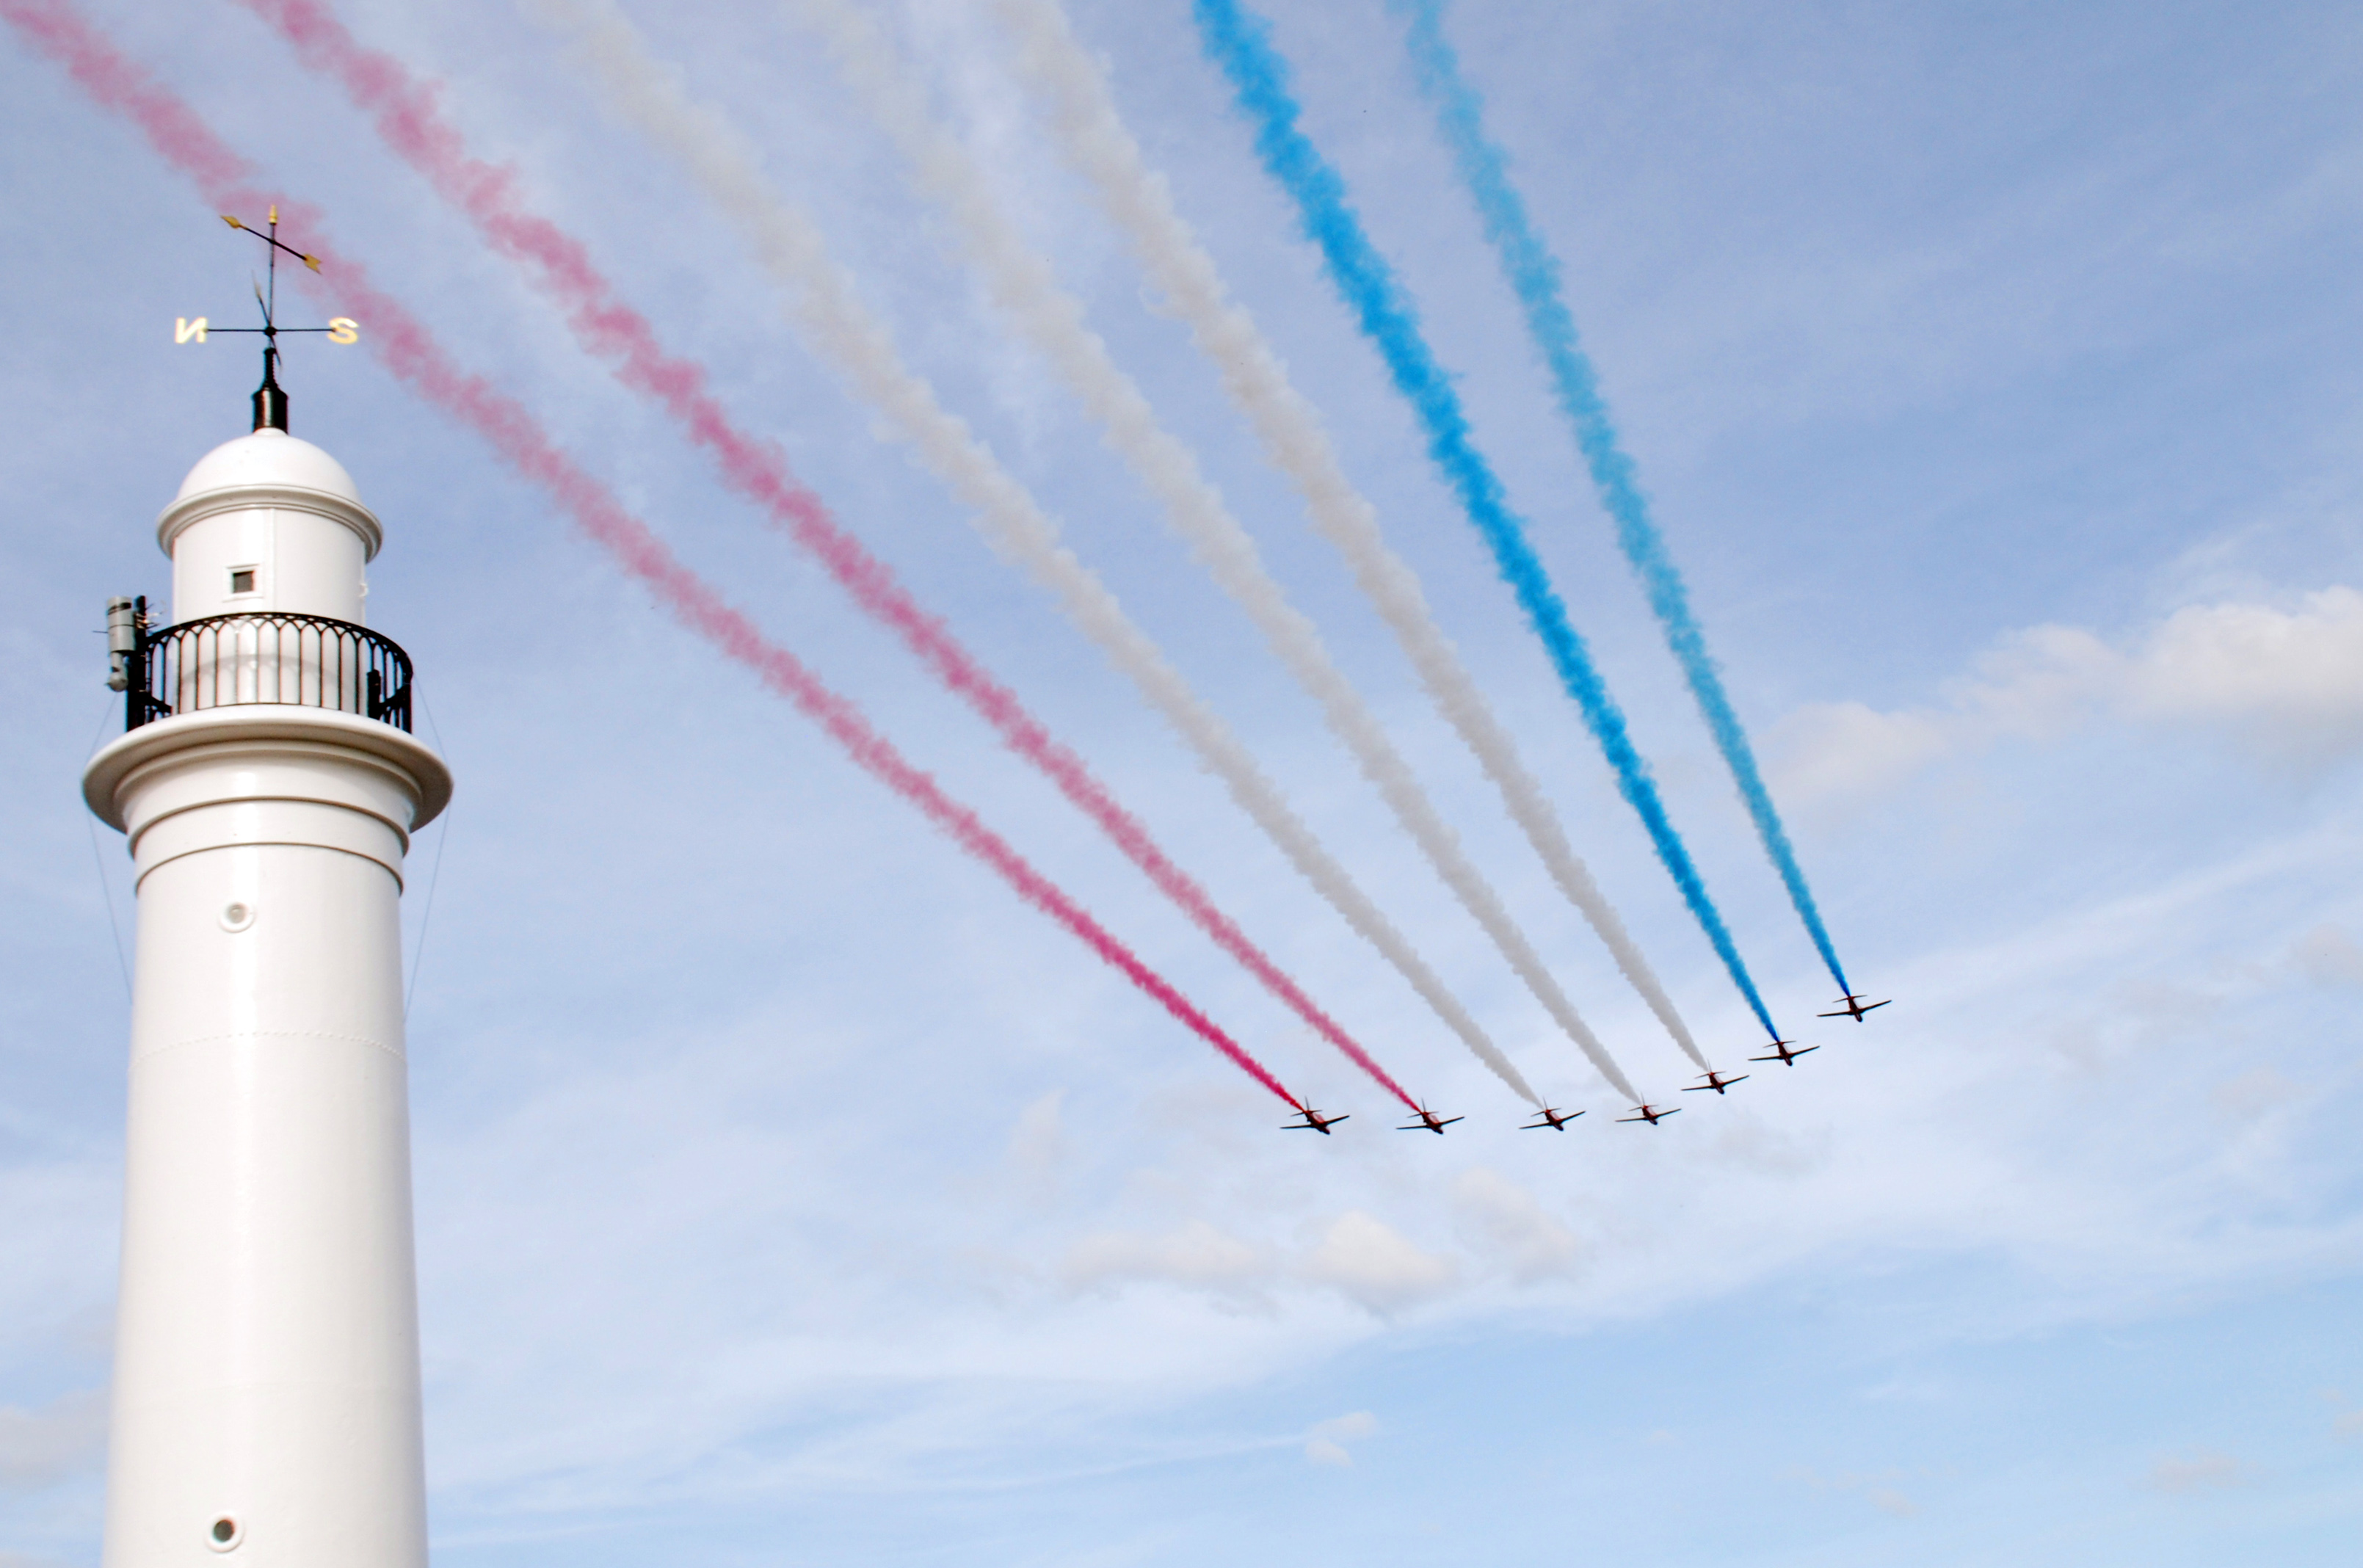 Sunderland International Airshow (thenortheasthub.com)